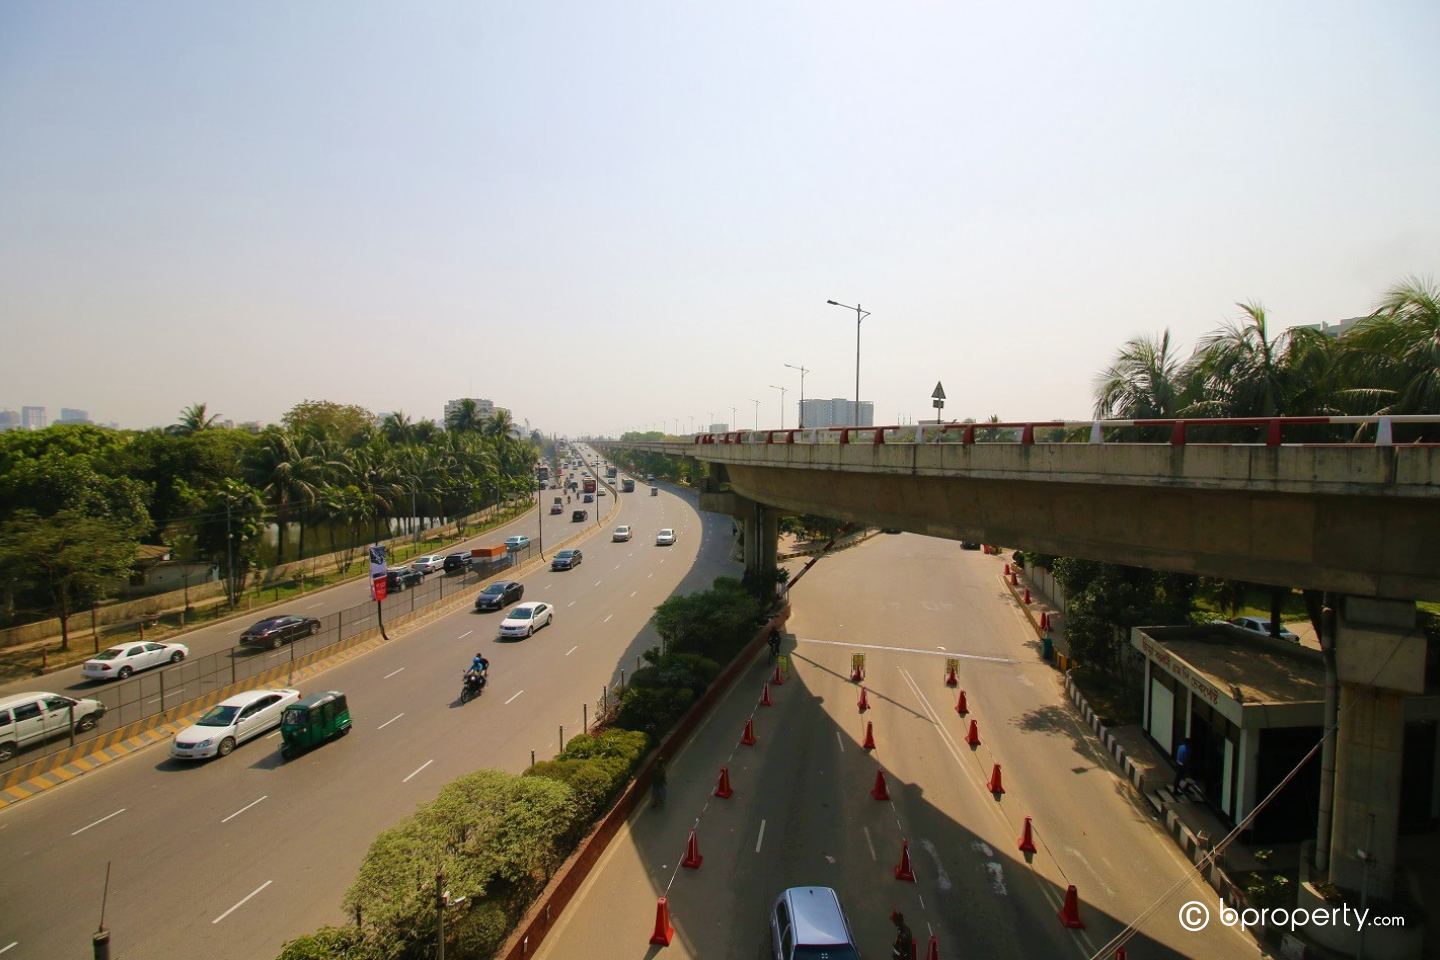 Living in Dhaka city, you must pick the efficient route for everyday commute